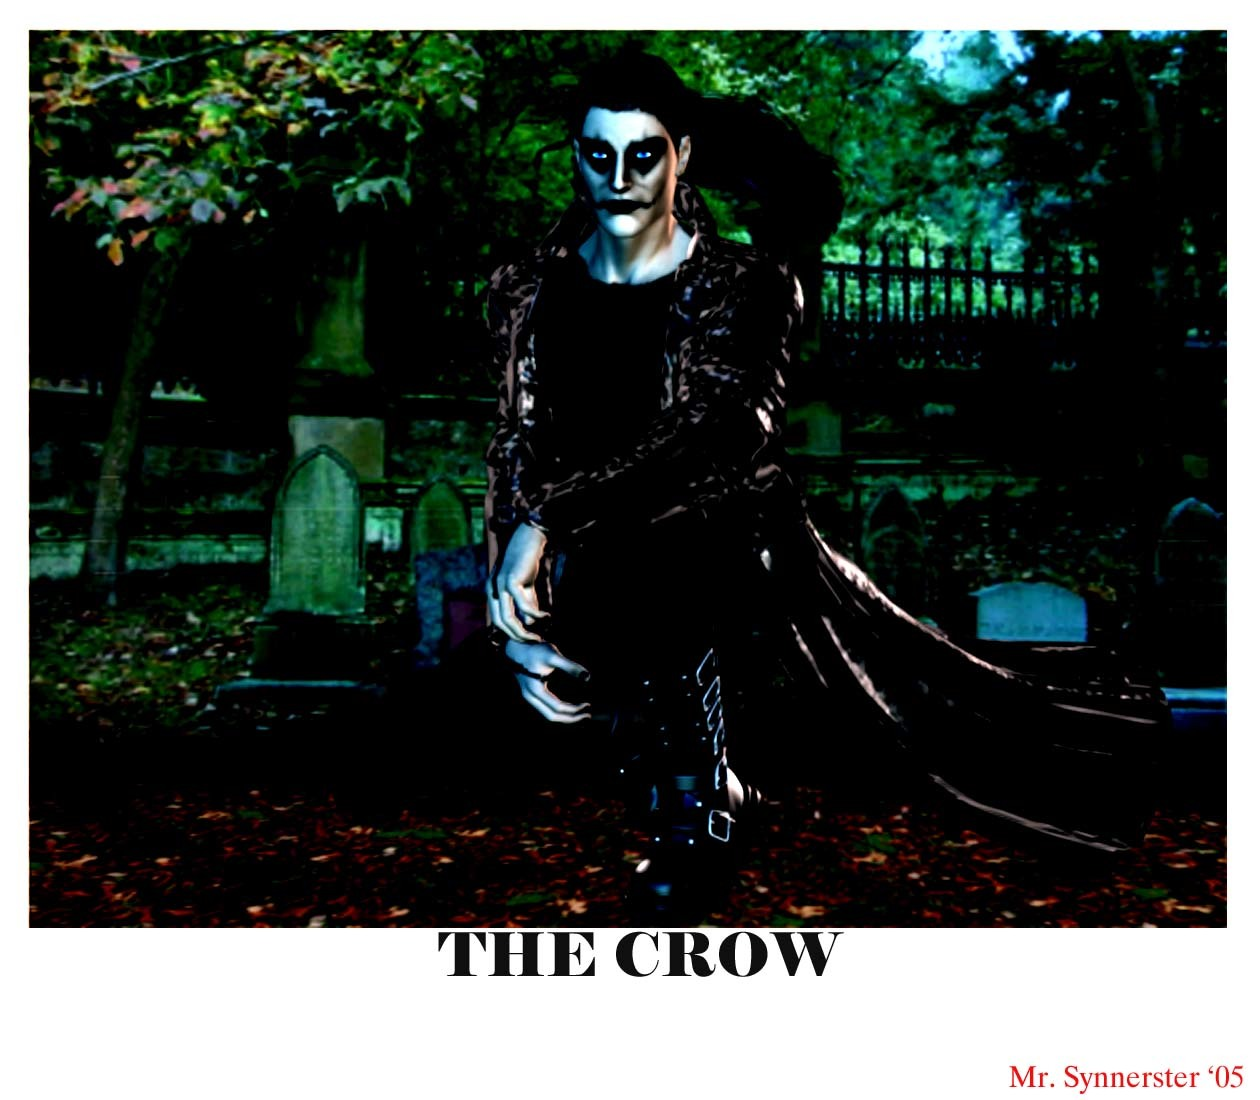 The Crow by MrSynnerster